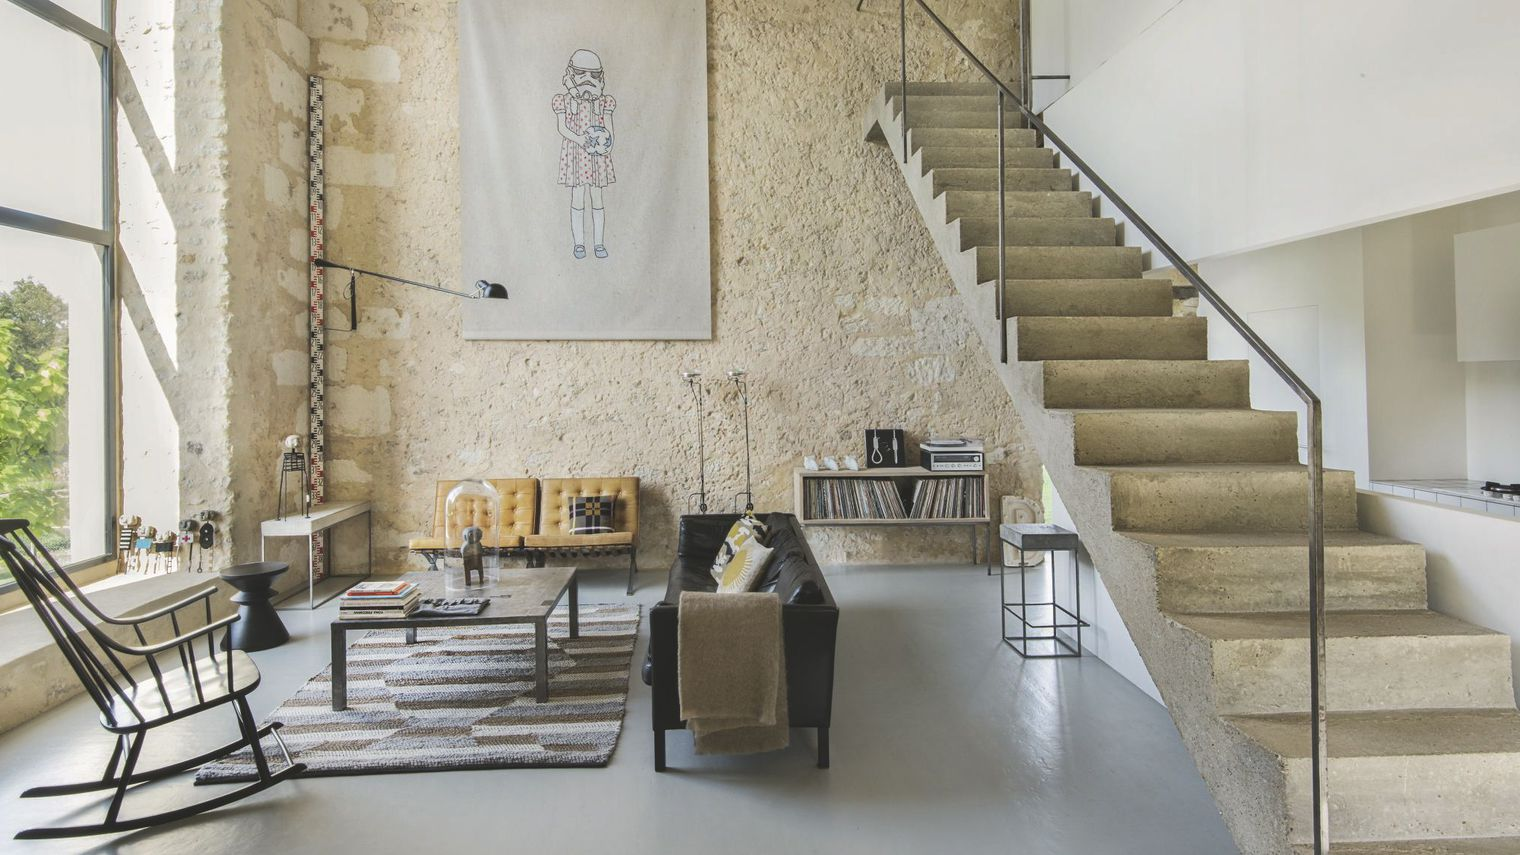 ... A Charming Family Home With Waxed Concrete Floor, Exposed Stone Walls,  Beautiful Furniture And A Mixture Of Both Industrial Style And Contemporary  Look.